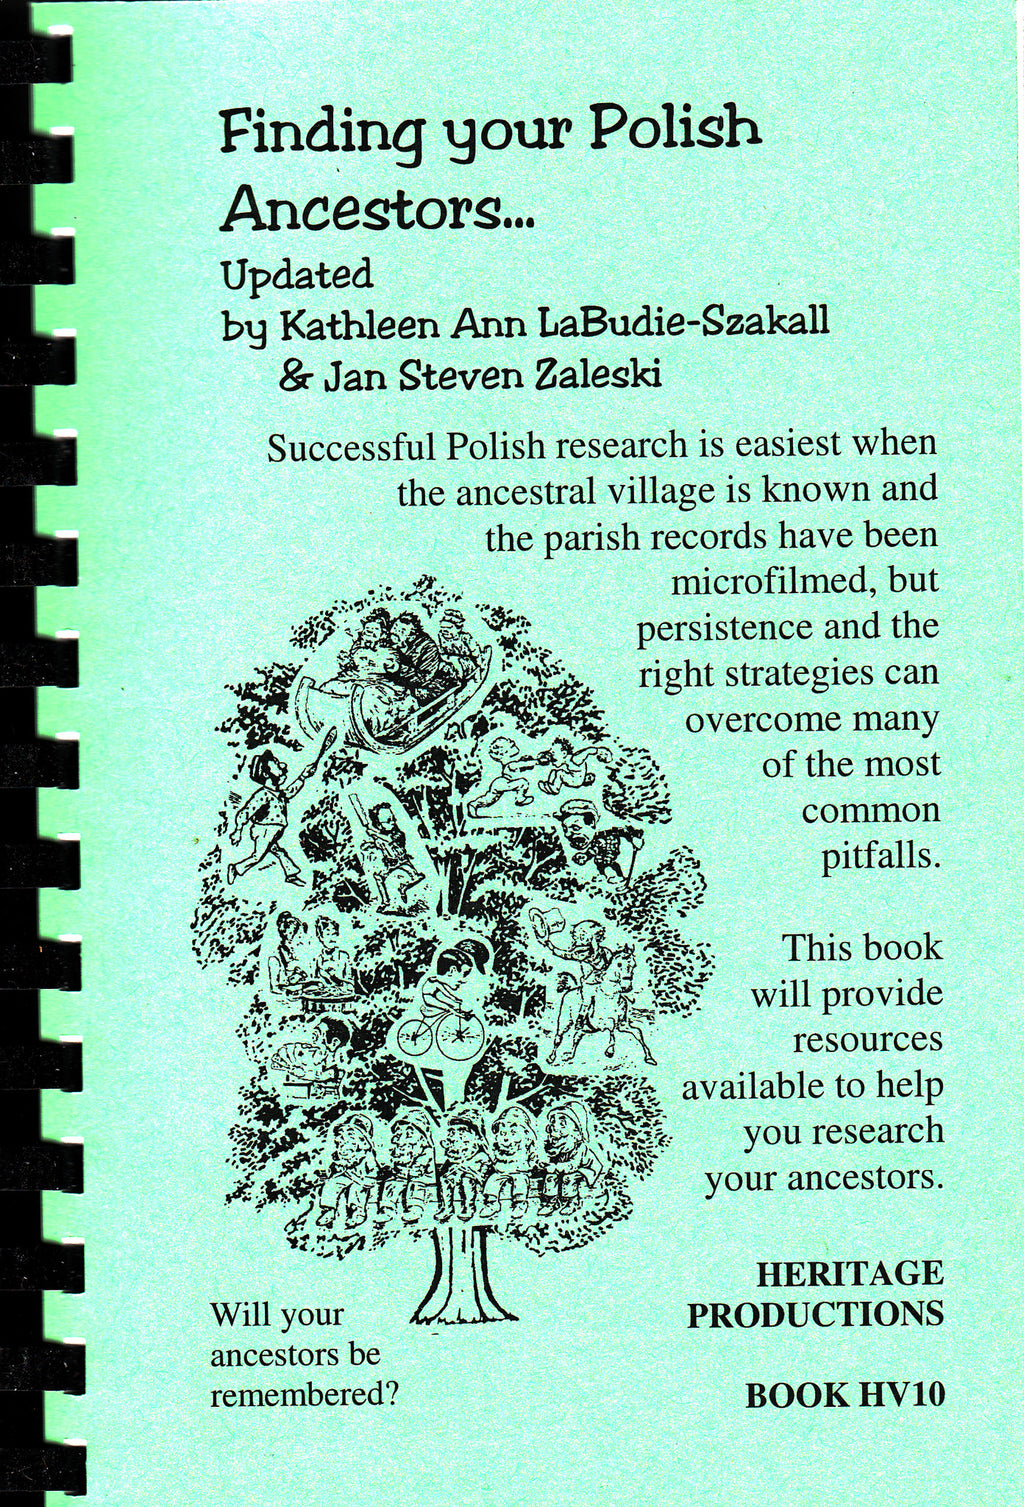 Finding Your Polish Ancestors